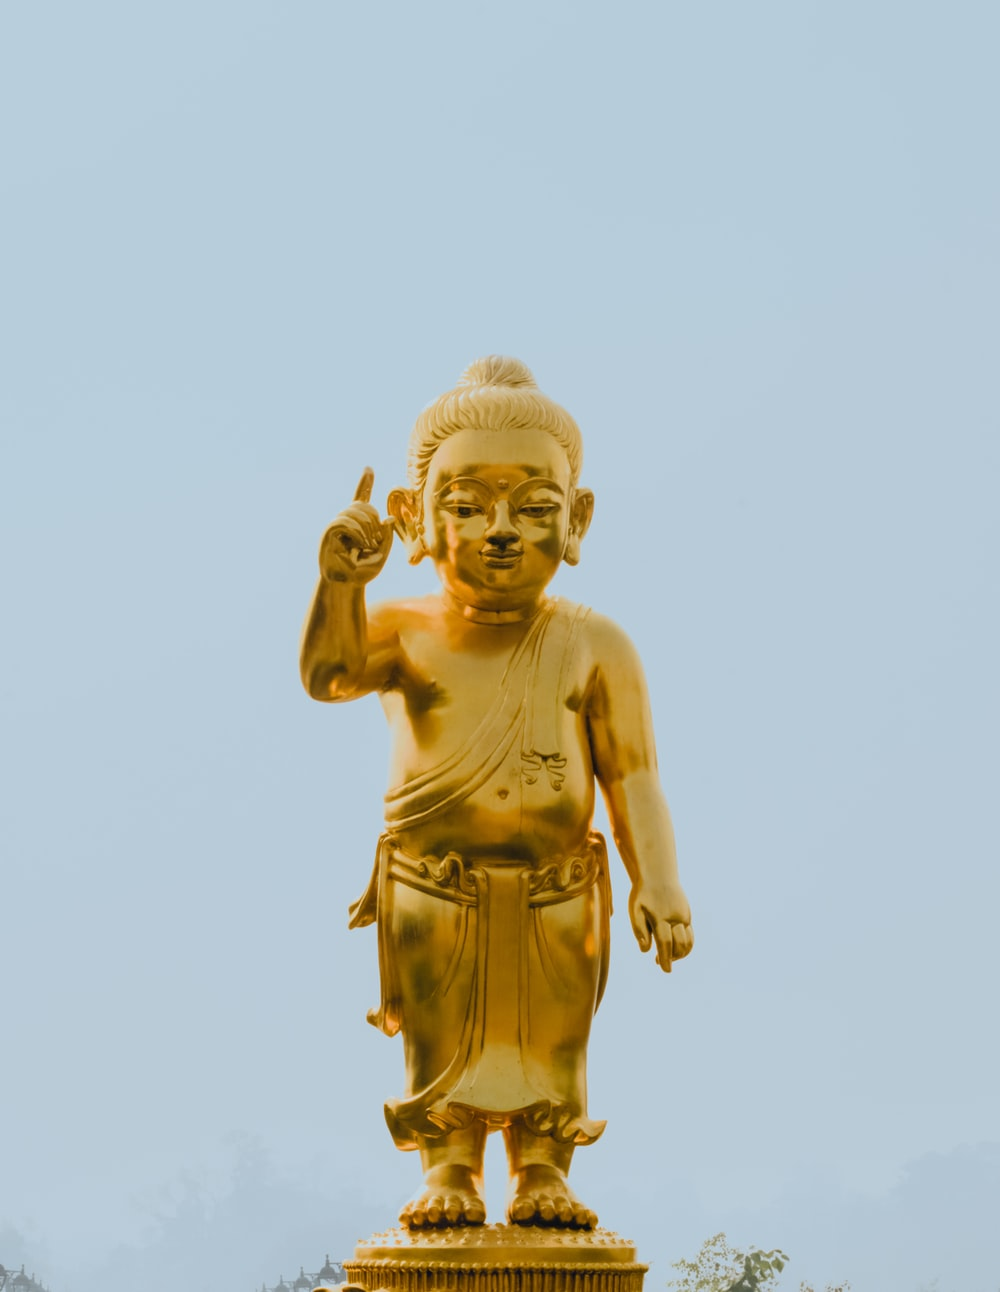 gold statue of a man